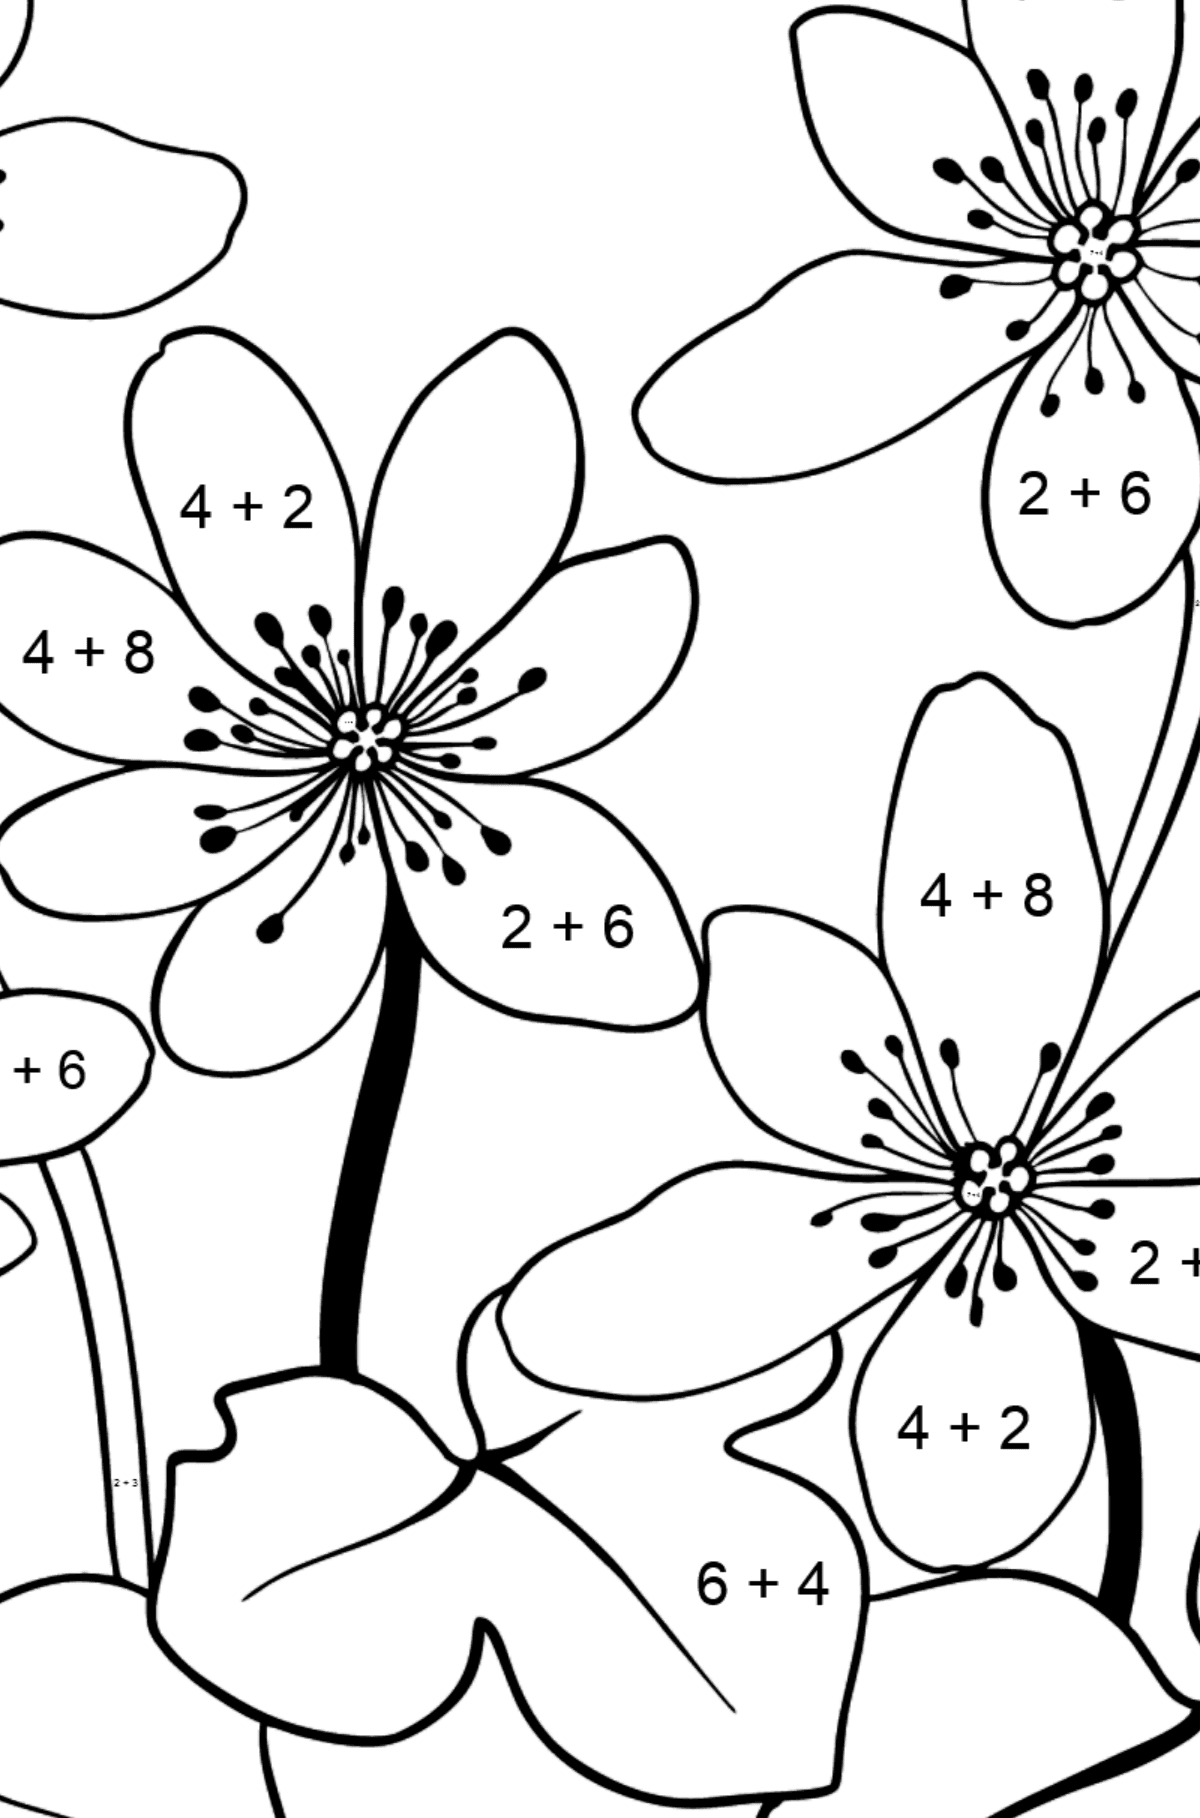 Flower Coloring Page - Hepatica - Math Coloring - Addition for Kids